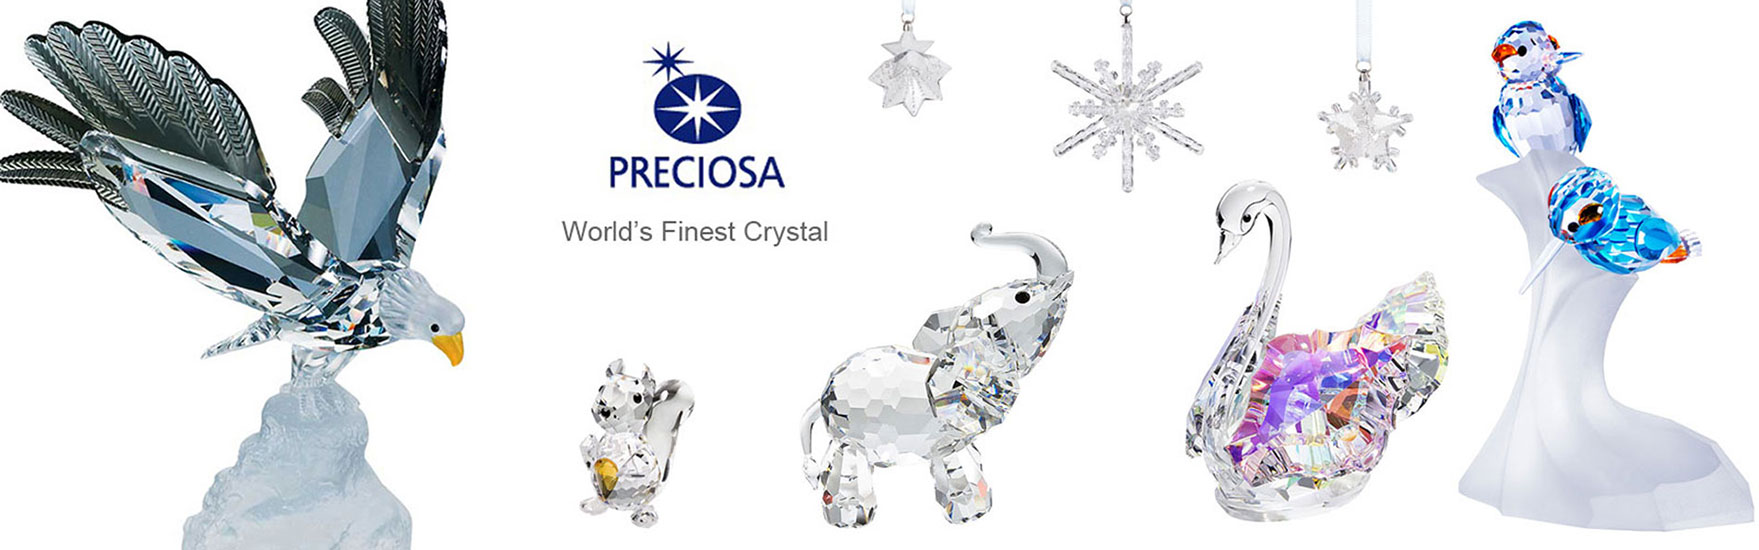 Crystal Figurines and Gifts by Preciosa Crystal. Worlds finest Crystal from the Czech Republic